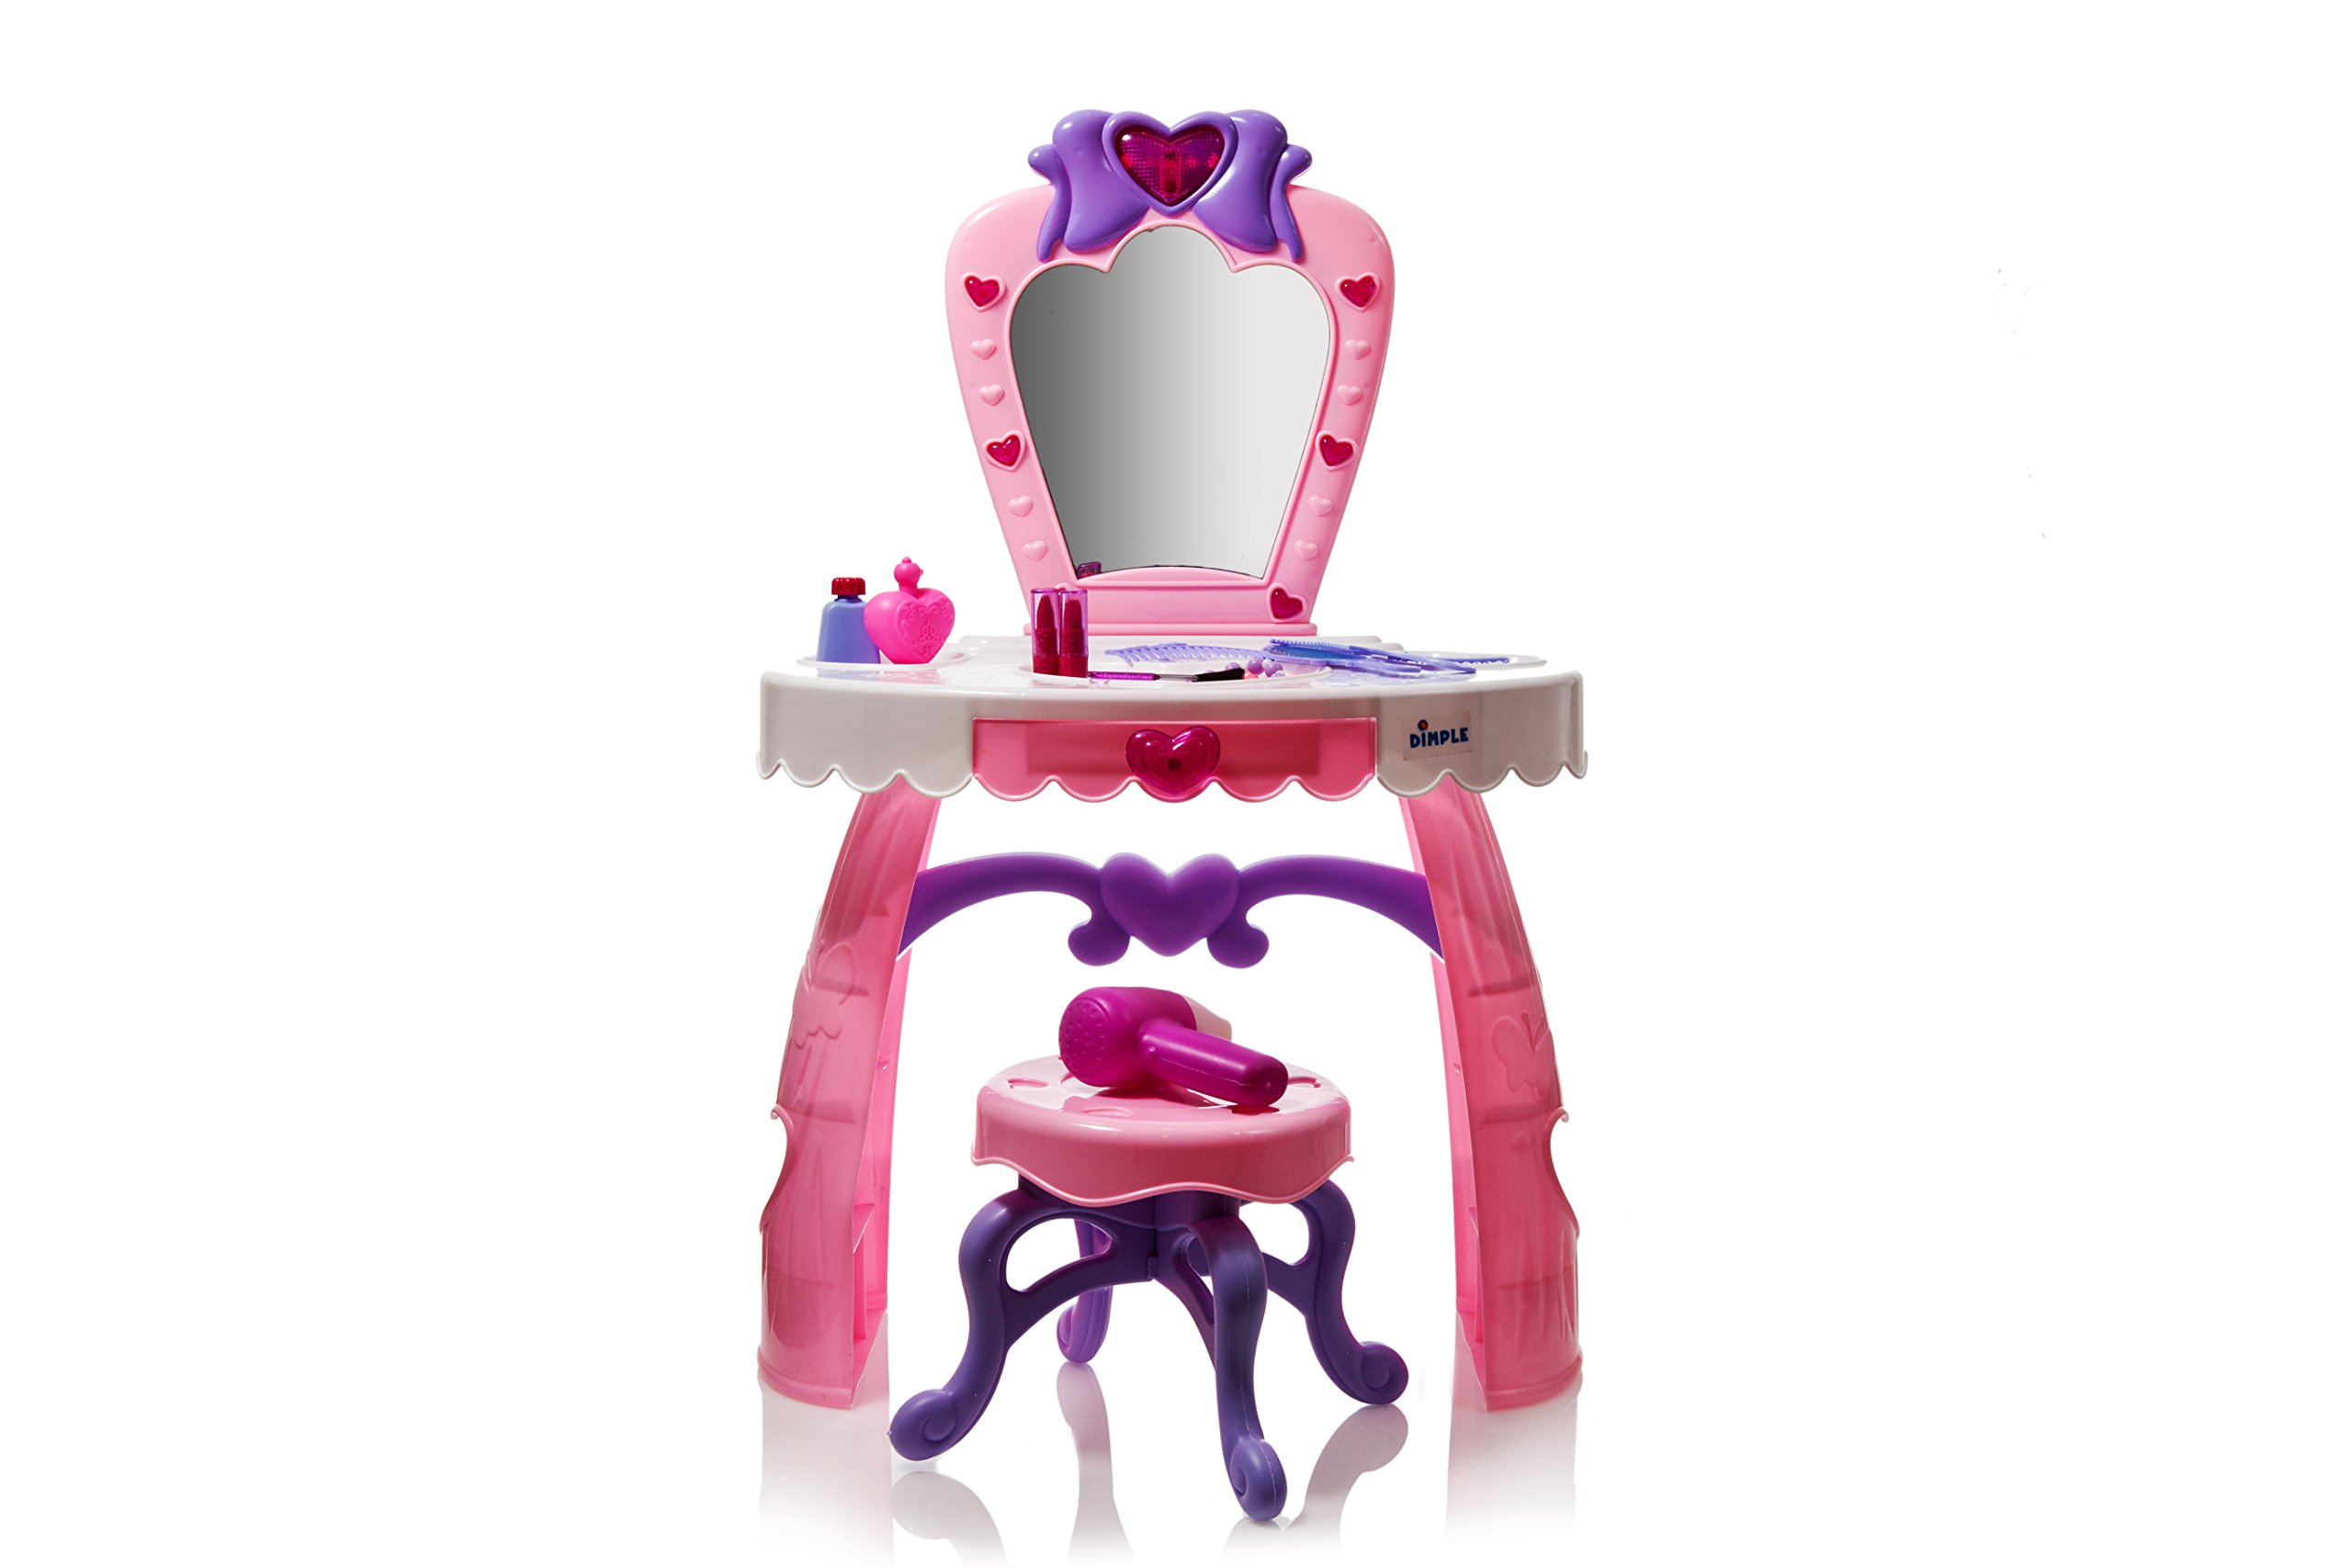 Dream Dresser Vanity Set with 14 Fashion & Makeup Accessories, Music & Flashing Lights by Dimple